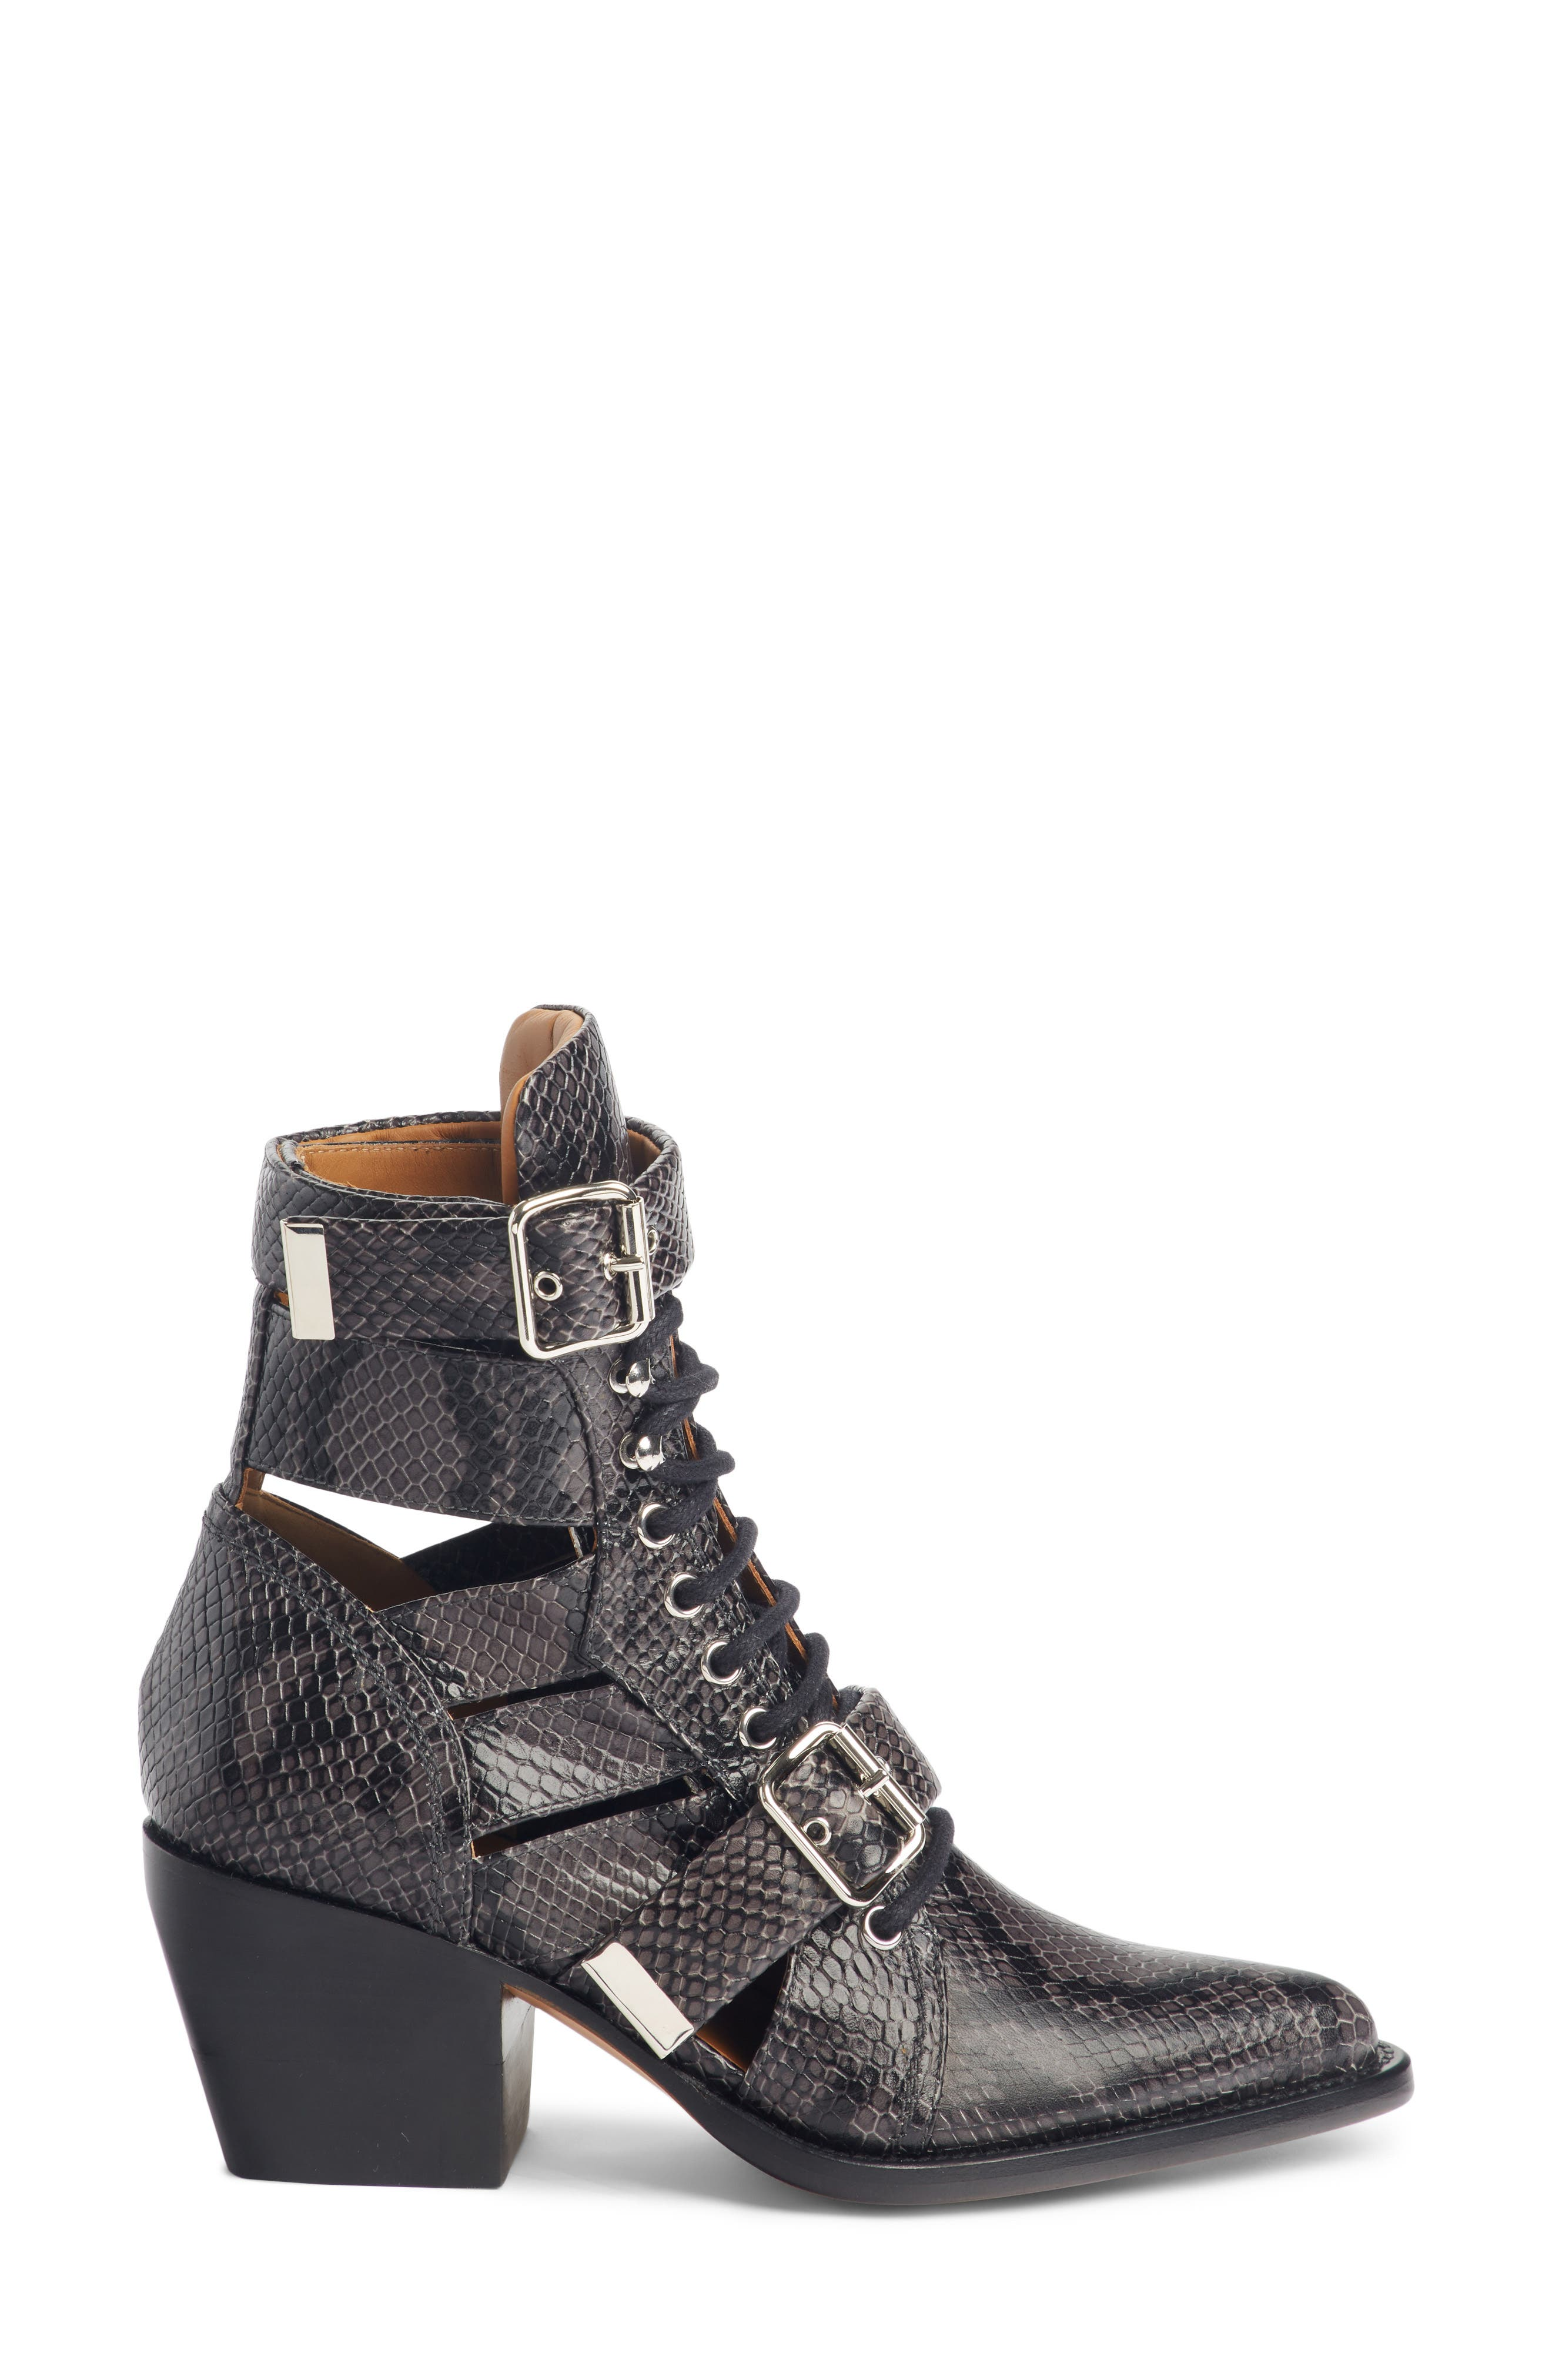 CHLOÉ, Rylee Caged Pointy Toe Boot, Alternate thumbnail 3, color, CHARCOAL BLACK